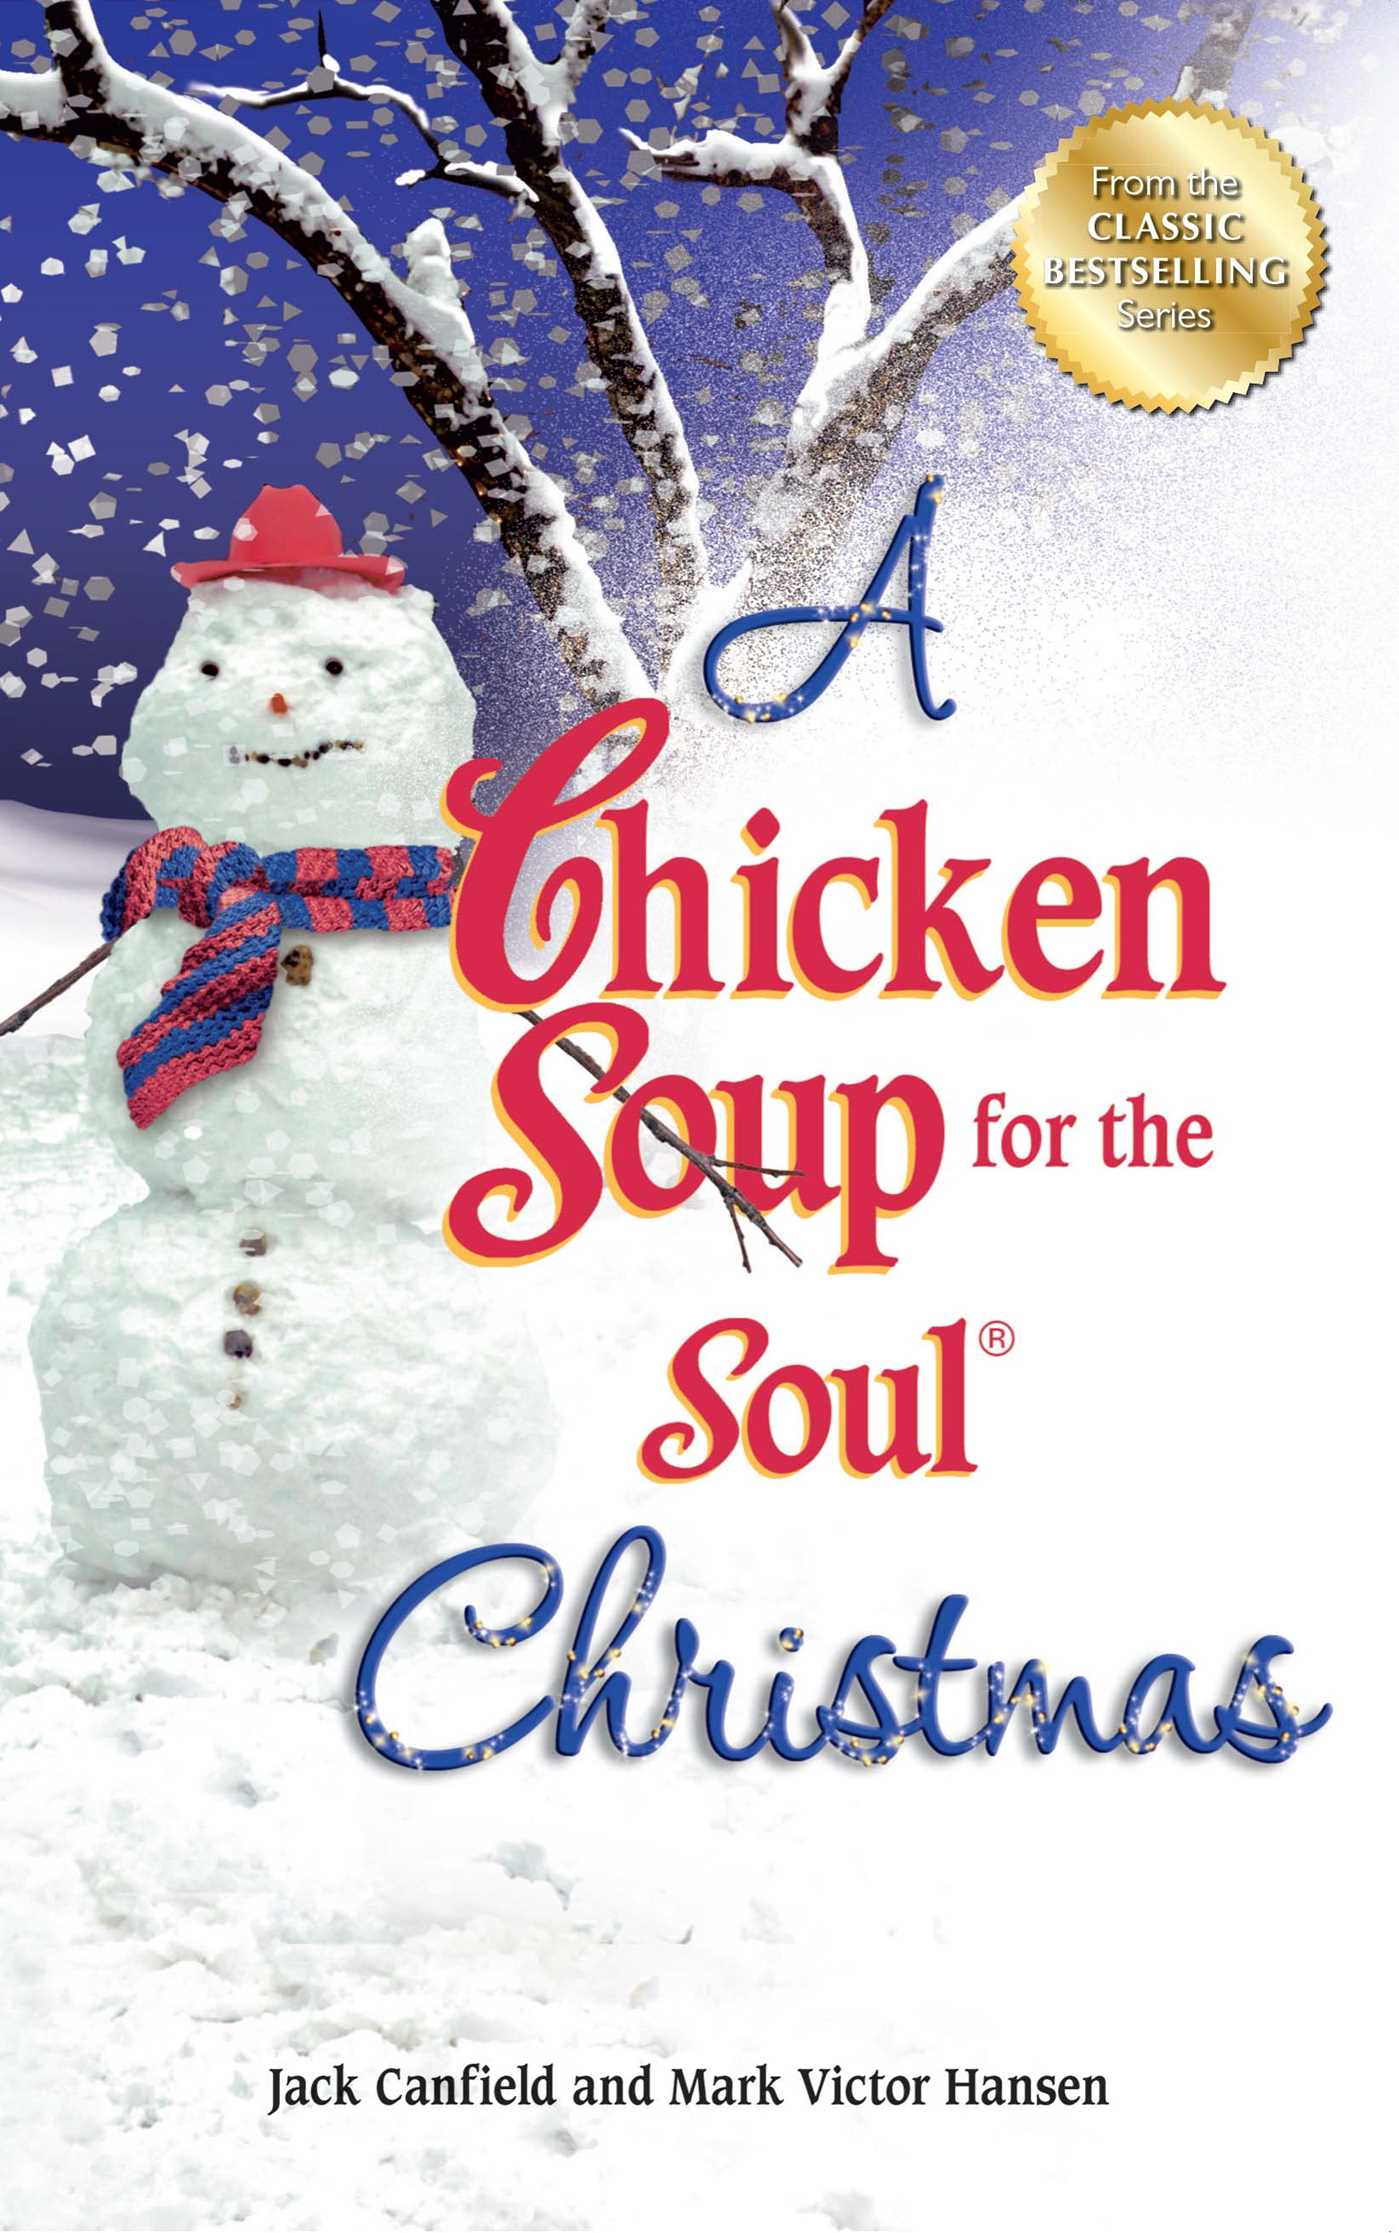 A chicken soup for the soul christmas 9781623610708 hr